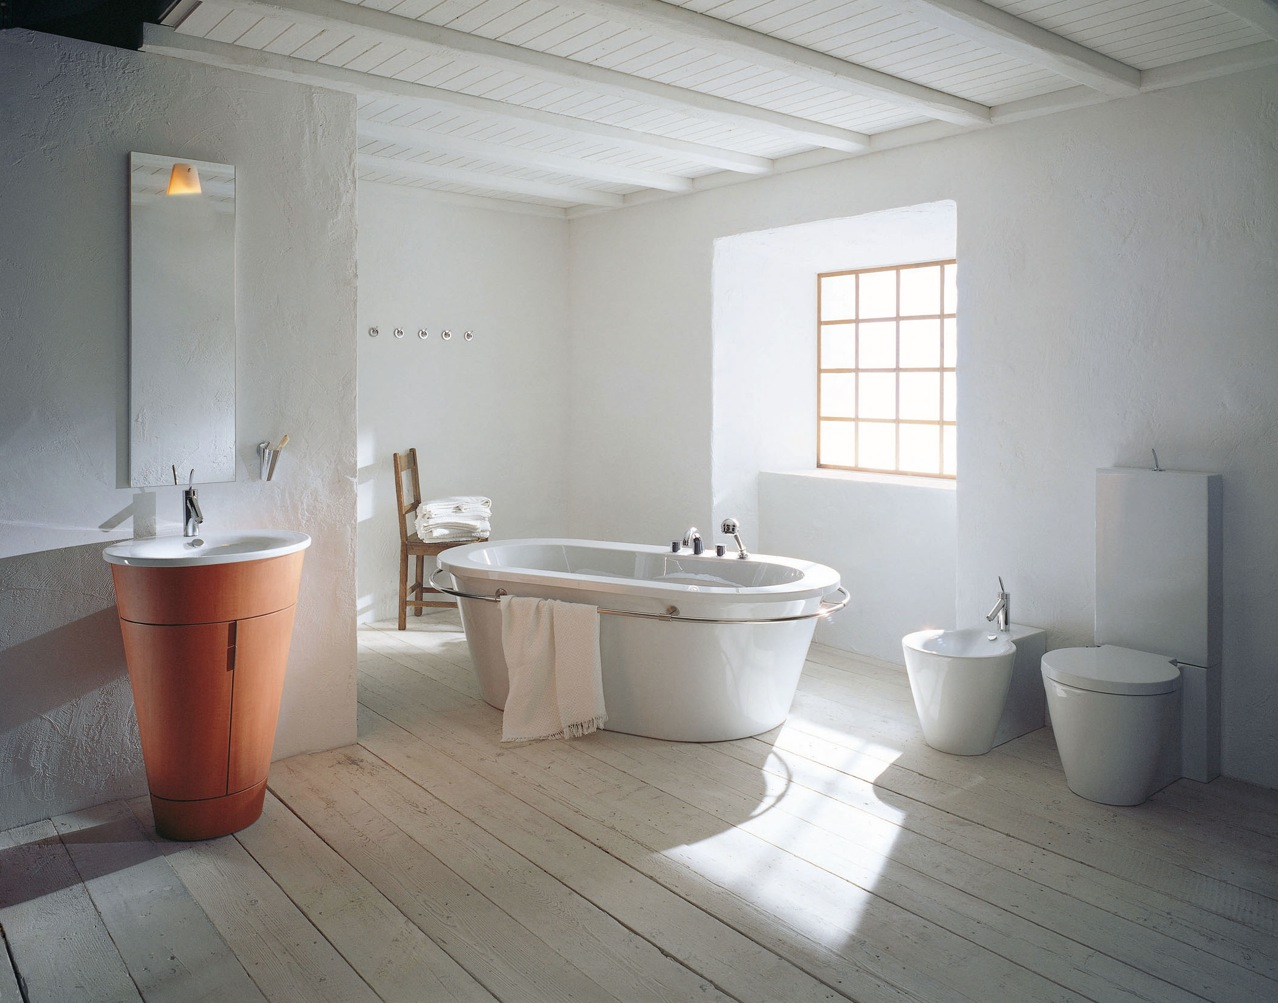 Philipe starck rustic modern bathroom decor interior for Modern interior bathroom